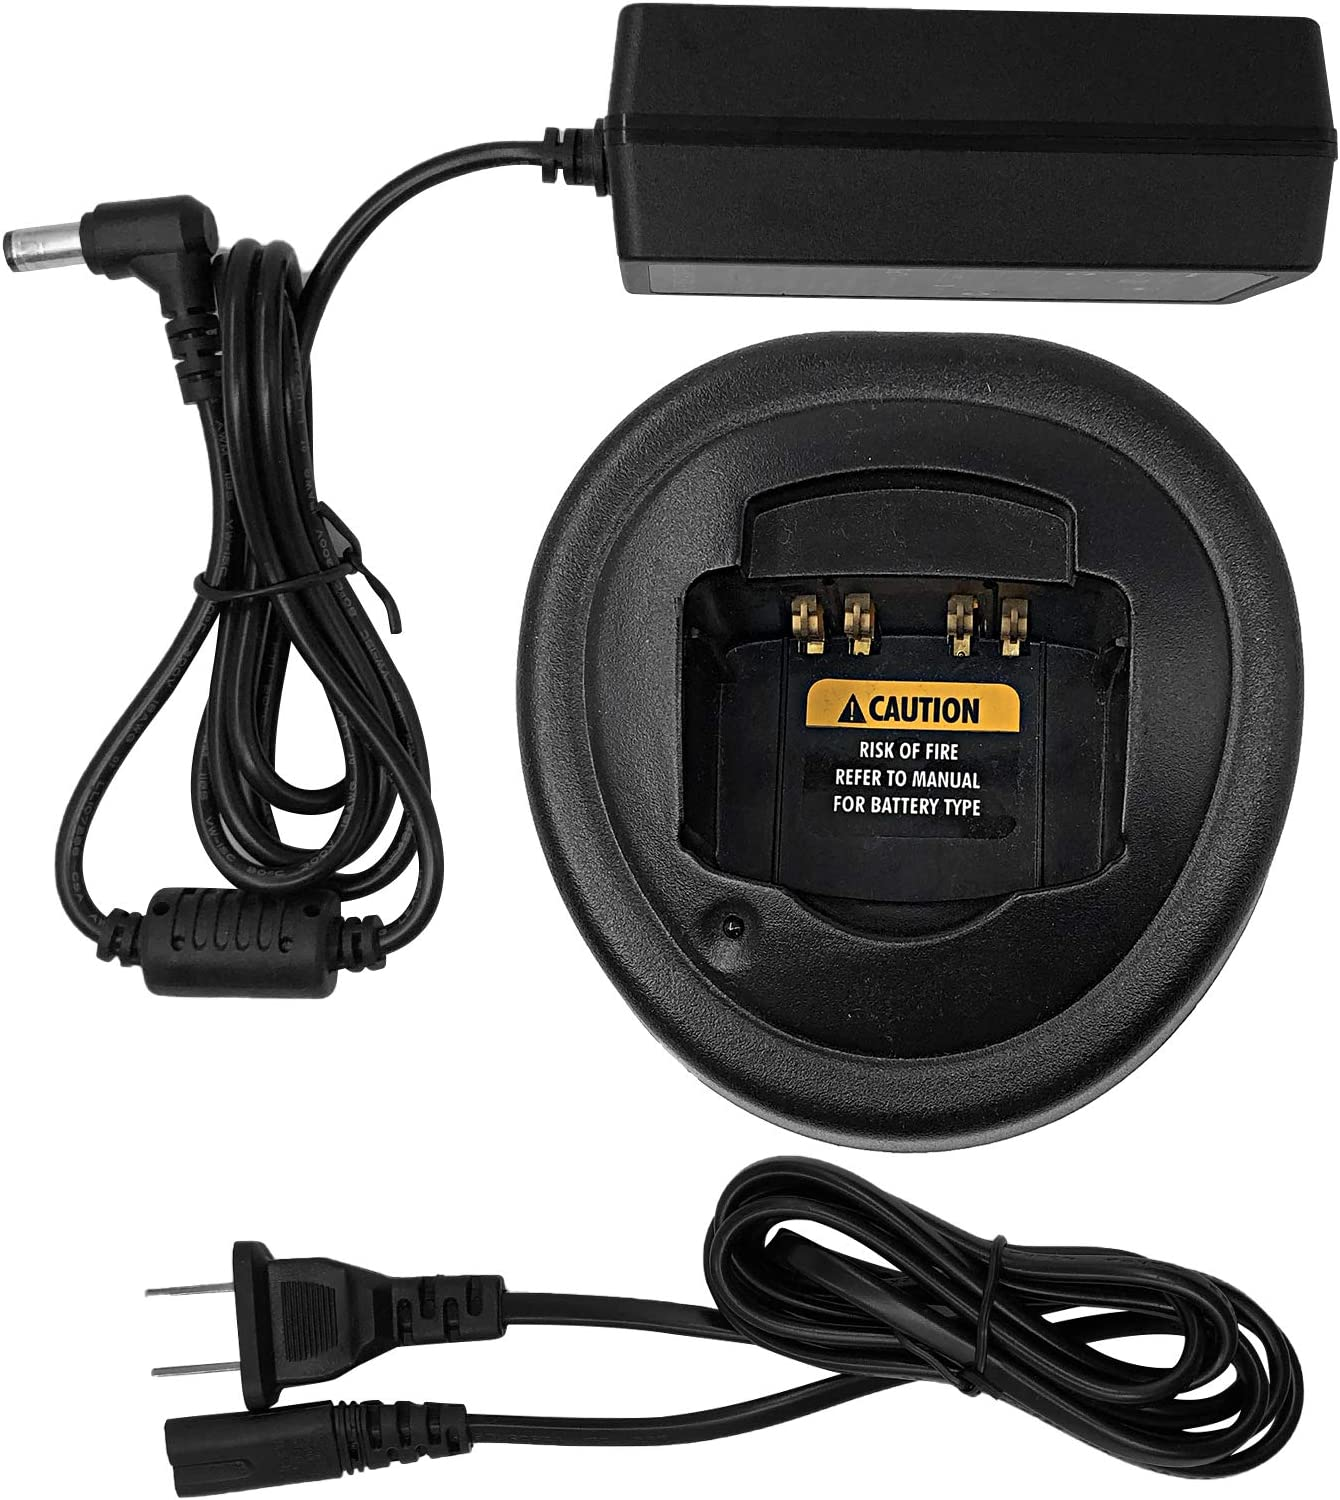 Max 69% OFF Max 89% OFF WPLN4107BR Rapid Batteries Charger PRO7350 Motorola PRO7150 for